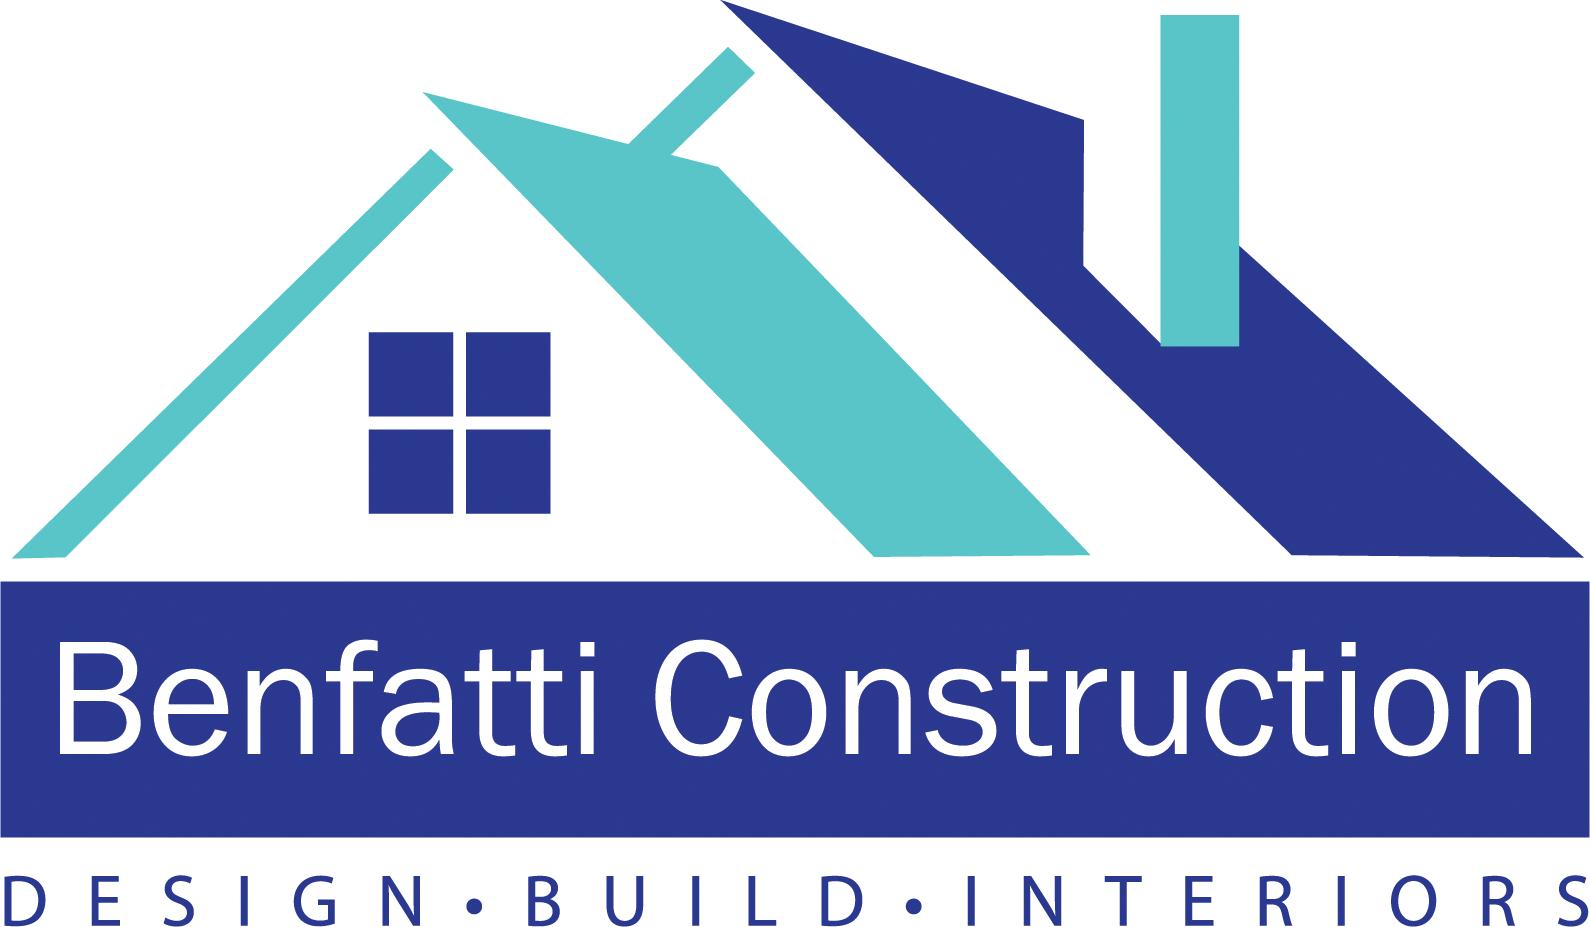 Benfatti Construction